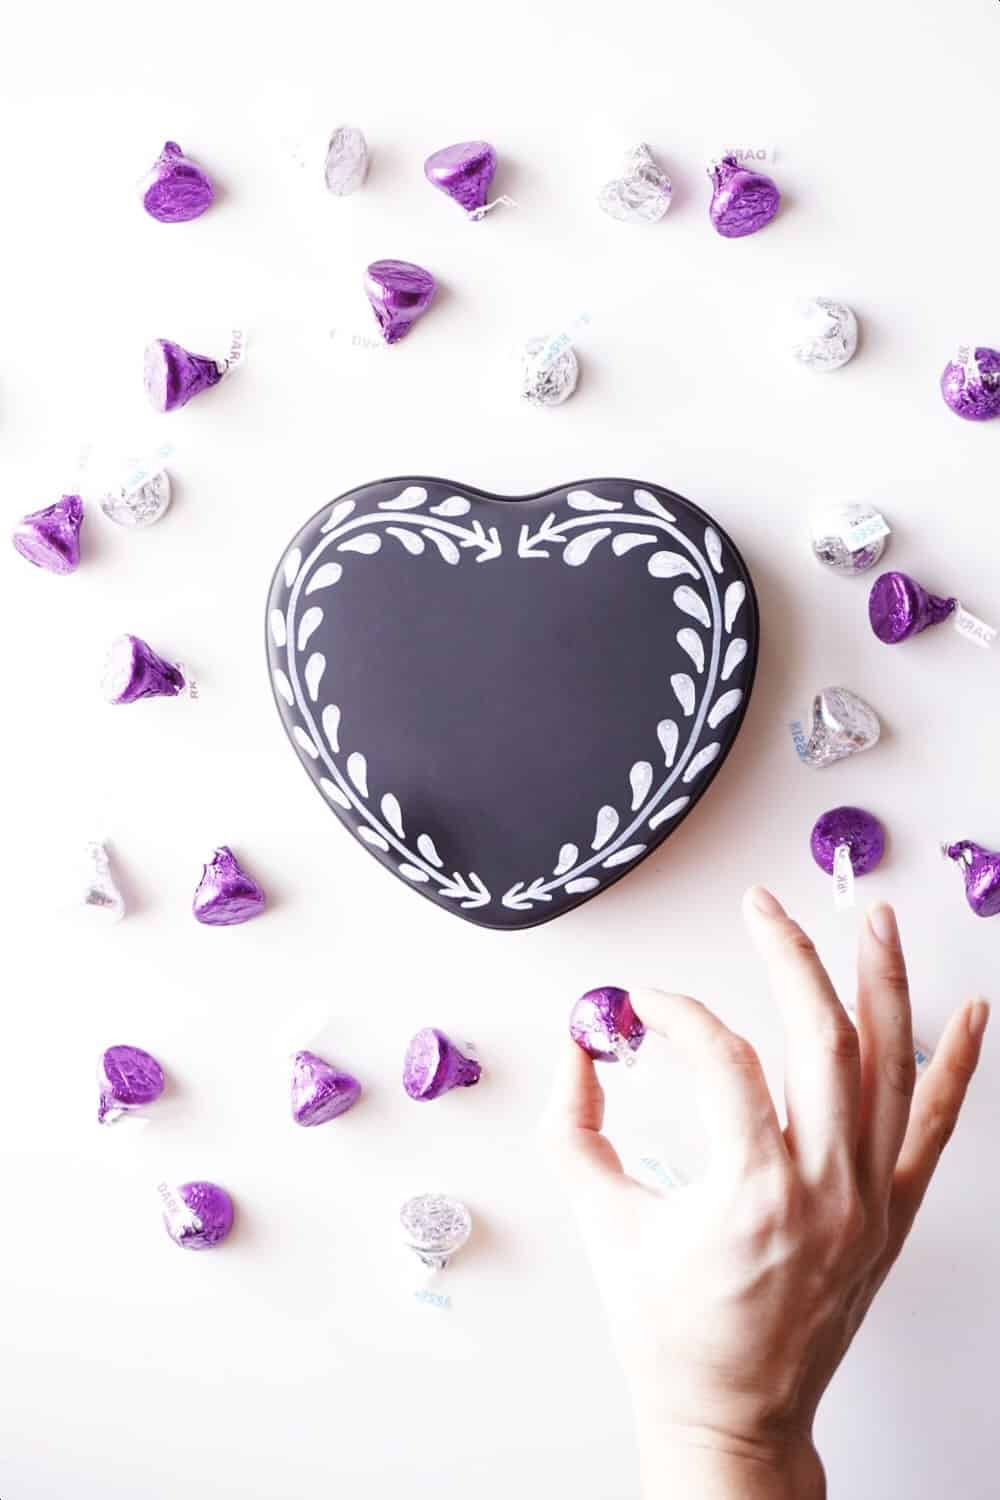 Instead of spending a lot on a paper box of chocolates, repurpose any tin and decorate it to give your valentine their own stash of sweets.